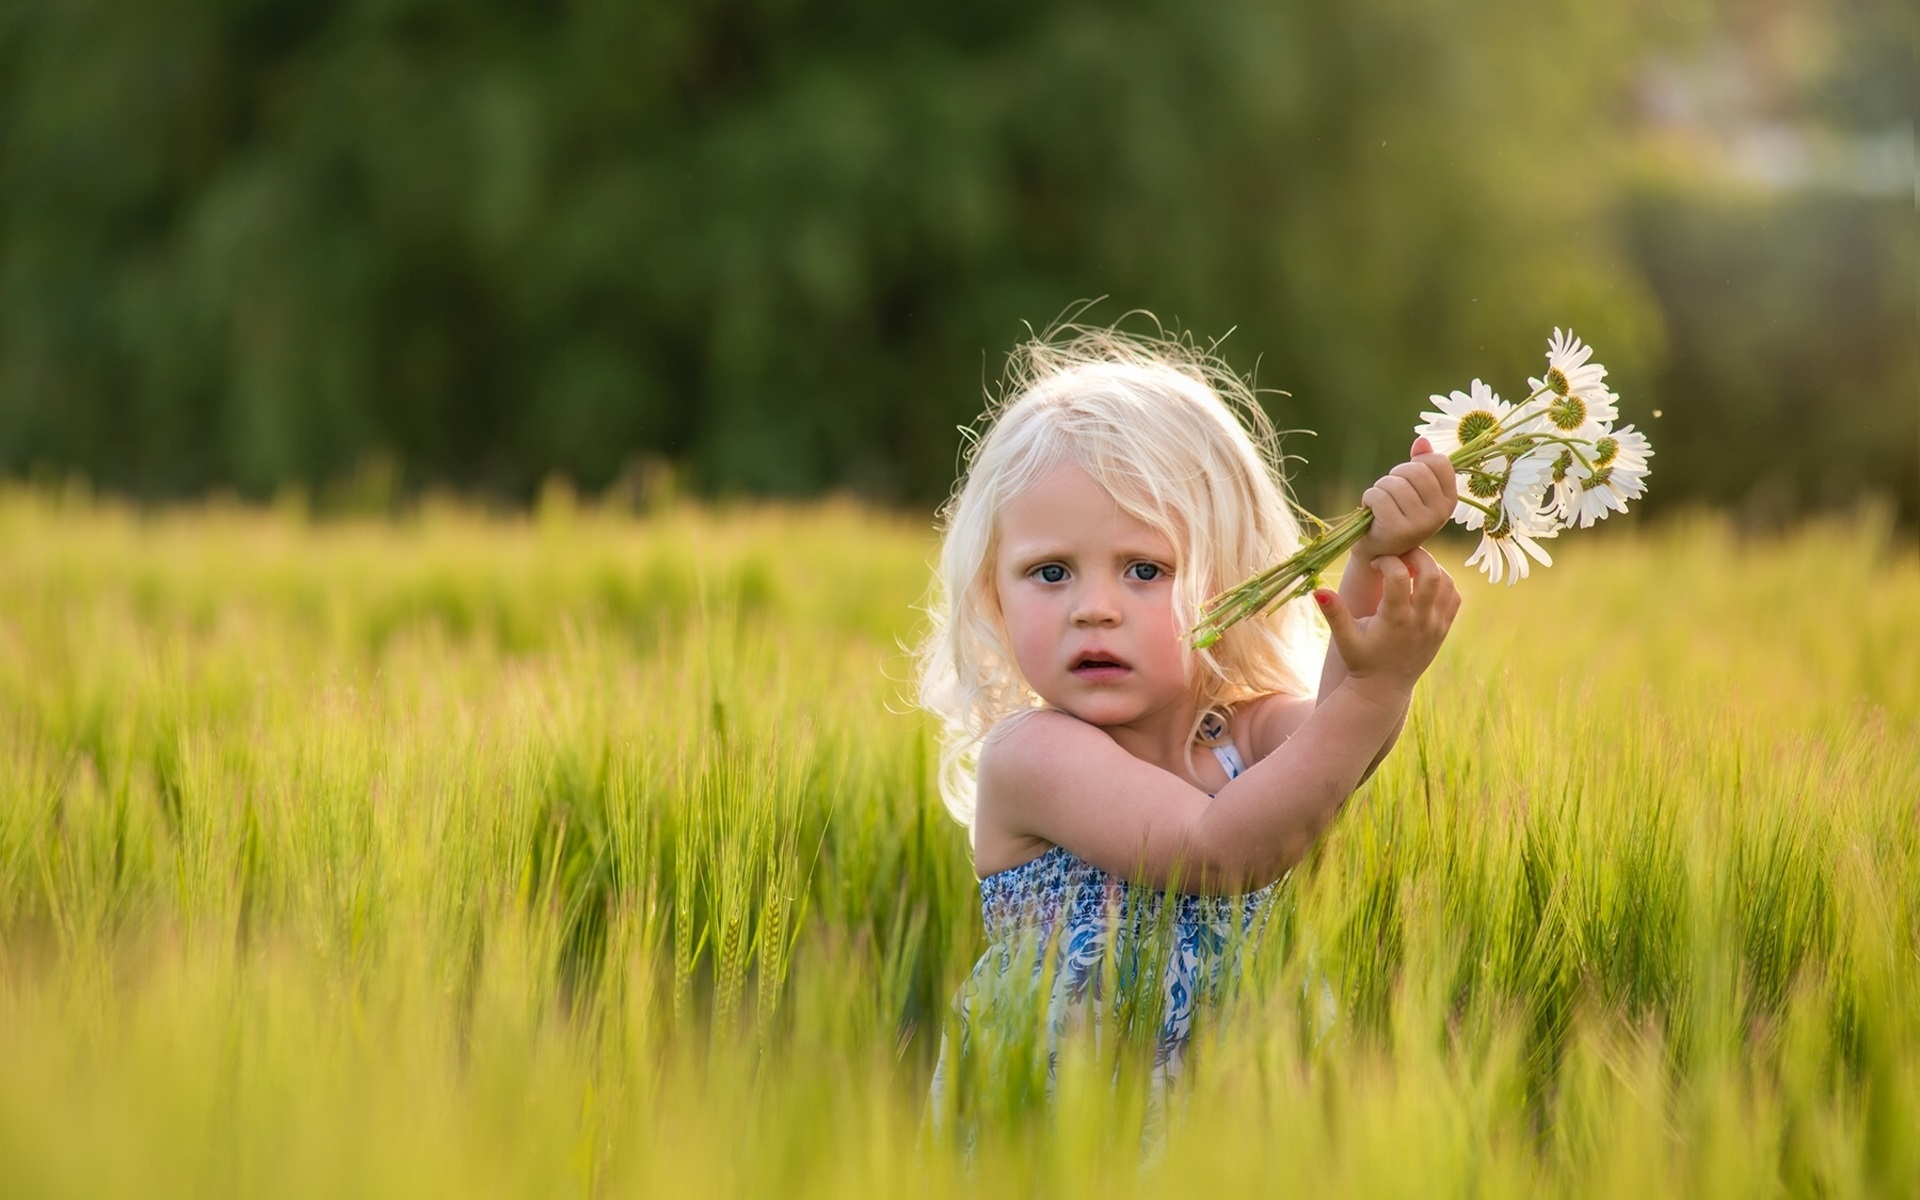 Cute-girl-in-wheat-field-daisies-flowers_1920x1200